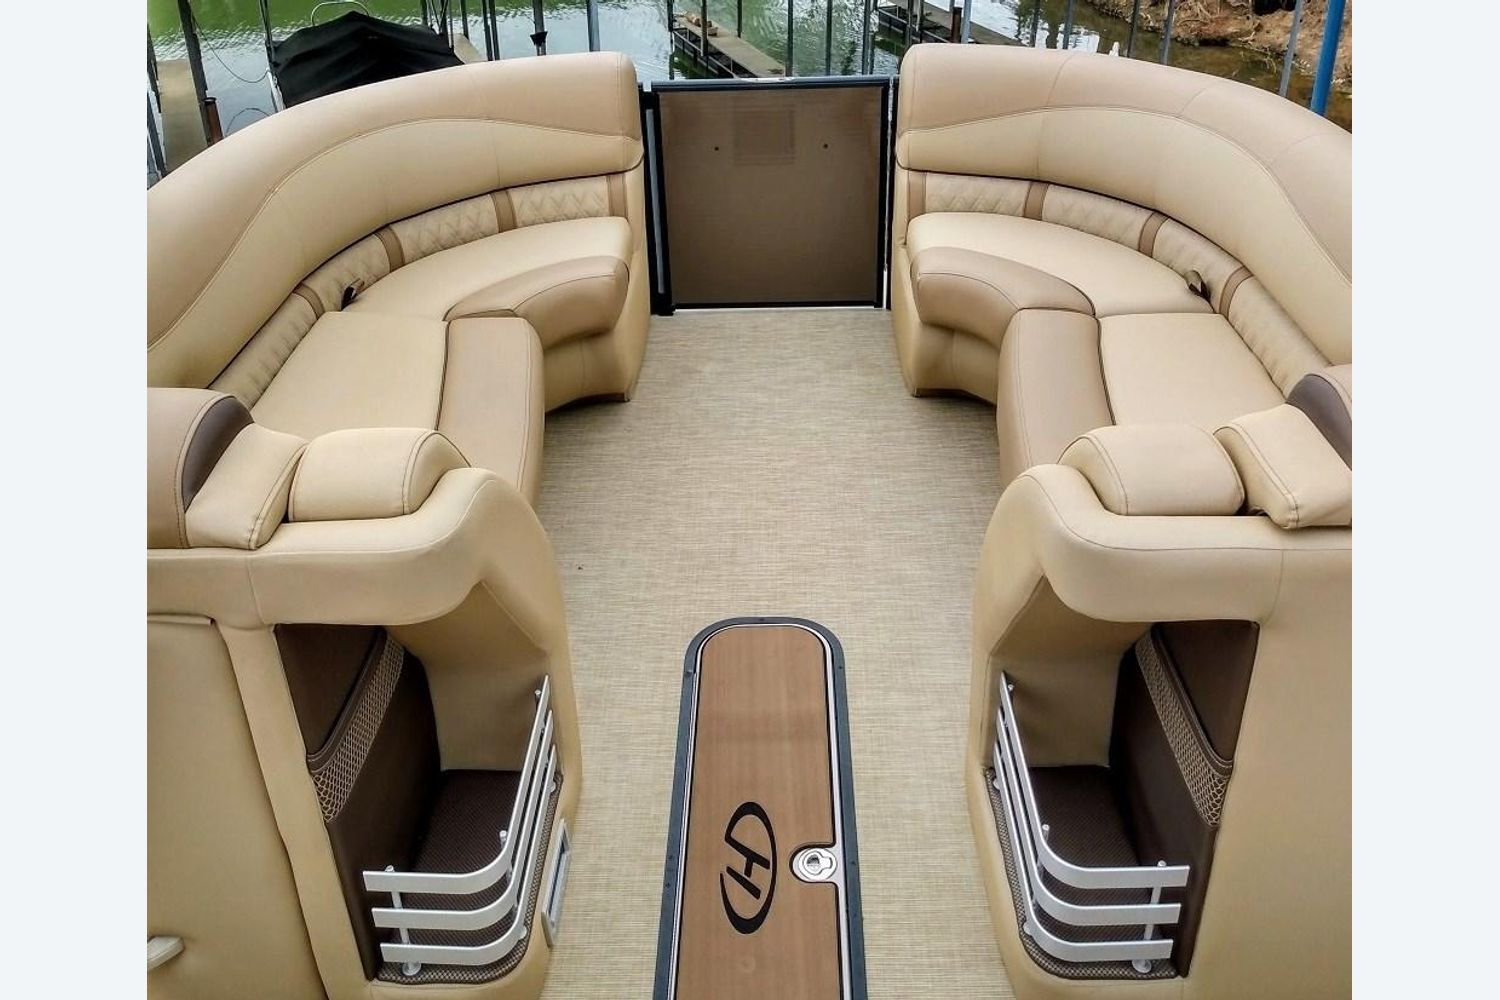 2020 Harris                                                              Grand Mariner 250 Image Thumbnail #10